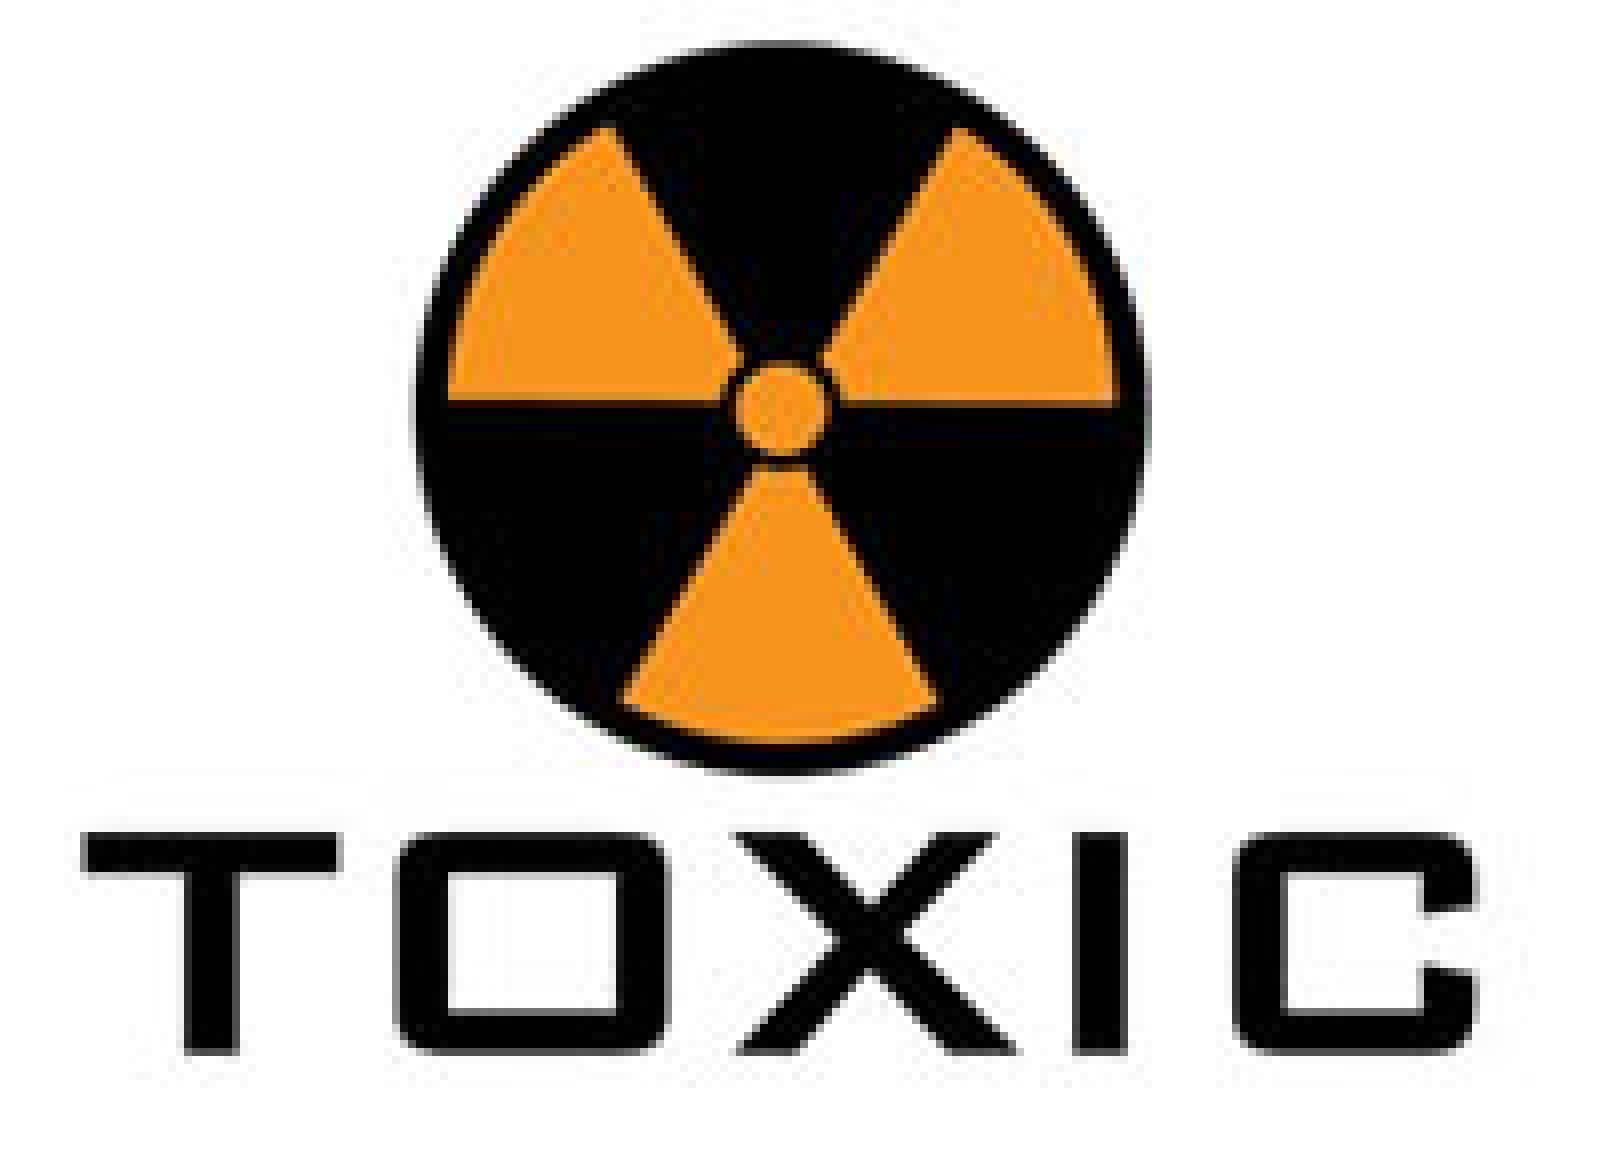 How Do You Define Toxic?